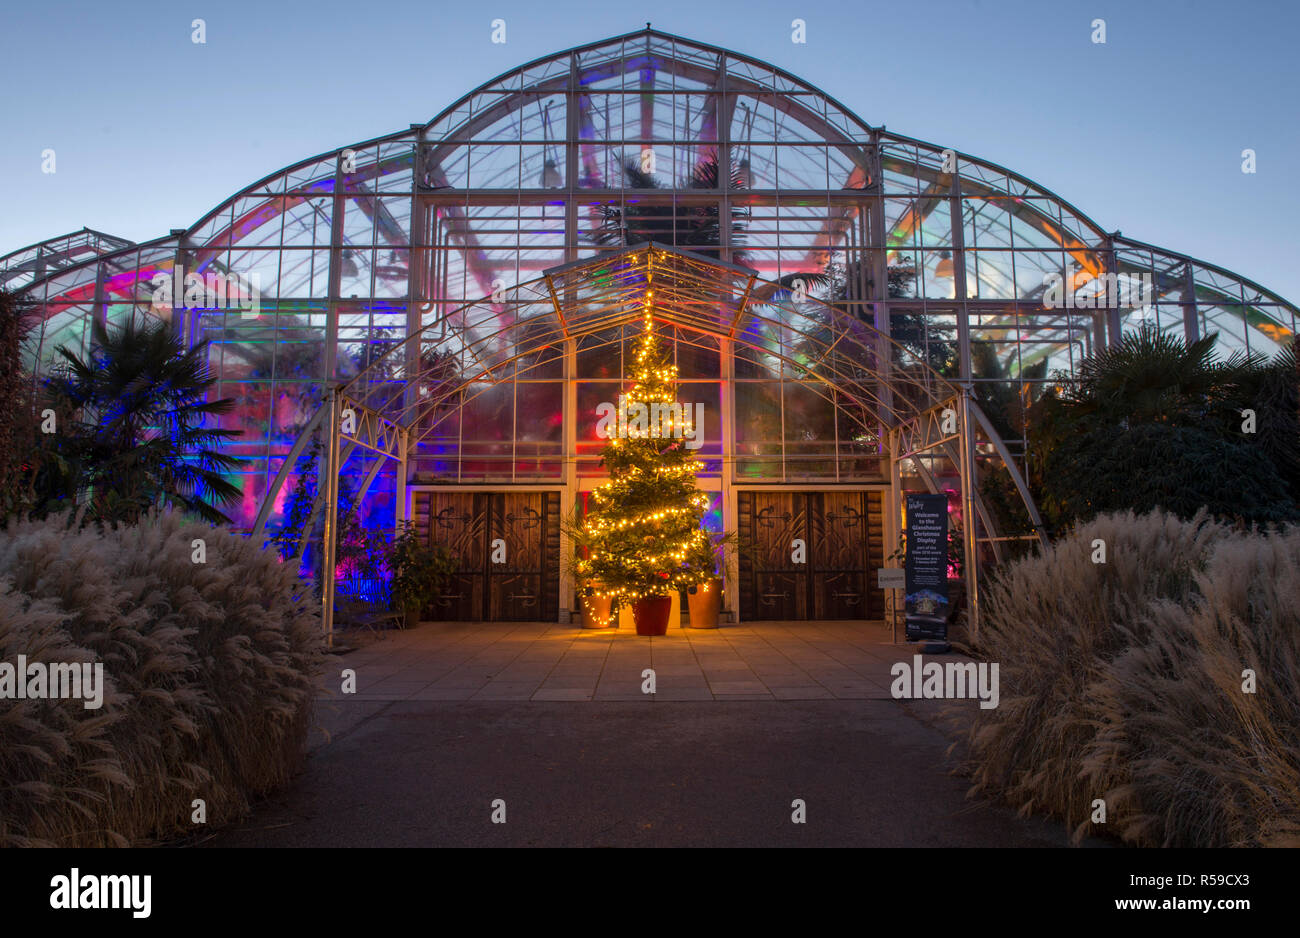 RHS Wisley, Surrey, UK. 30 November, 2018. Spectacular botanically-inspired illuminations by Jigantics switch on at RHS Wisley and open to the public from 4pm-8pm, 1st December 2018 - Wednesday 2 January 2019 for the festive holiday season. Image: Woodland realm Christmas display with Christmas Tree at the Glasshouse entrance. Credit: Malcolm Park/Alamy Live News - Stock Image